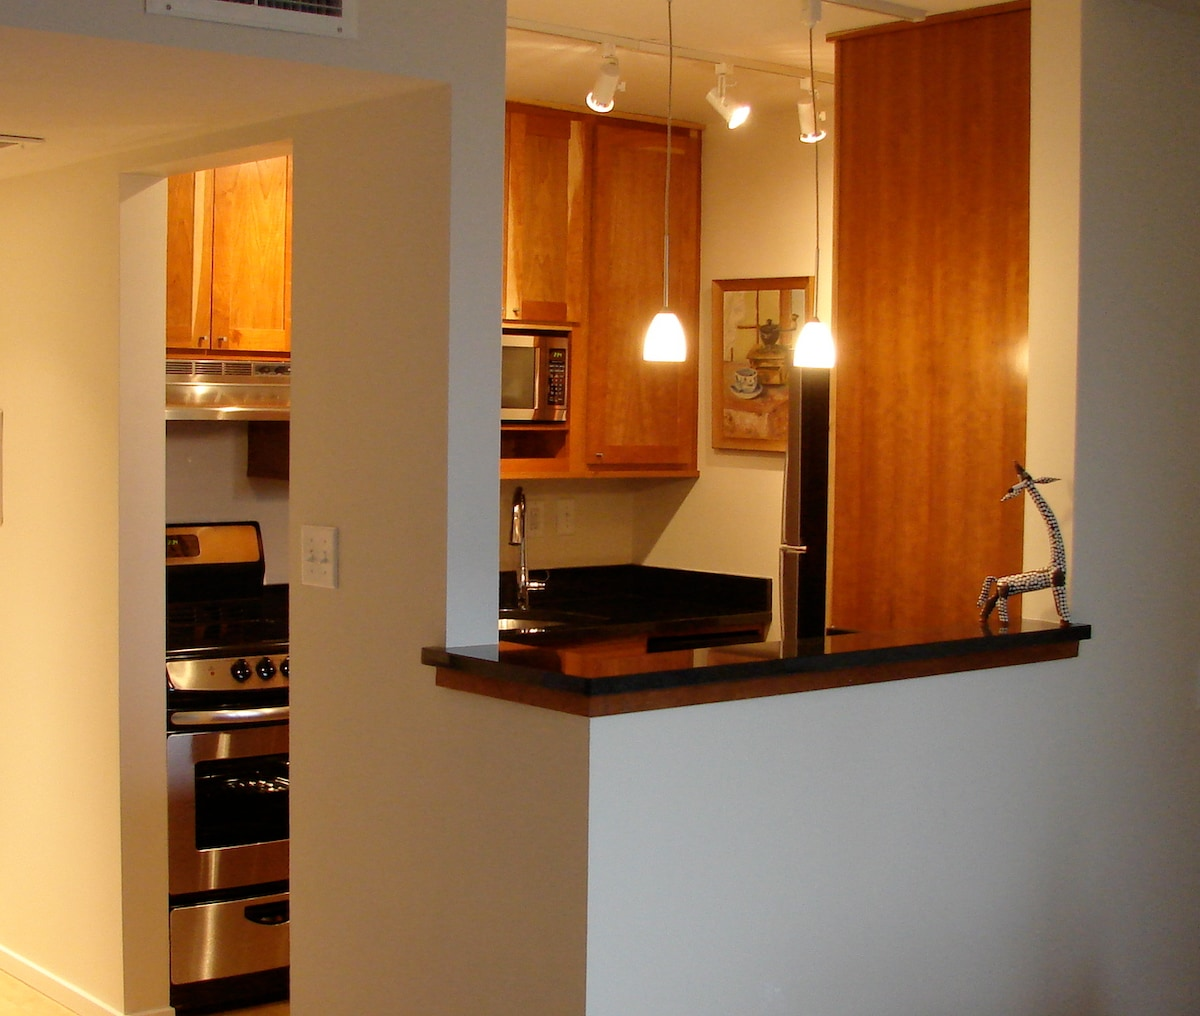 Cherry, granite and stainless kitchen - range, microwave, dw, 'frig w/ ice-maker, coffee maker, toaster